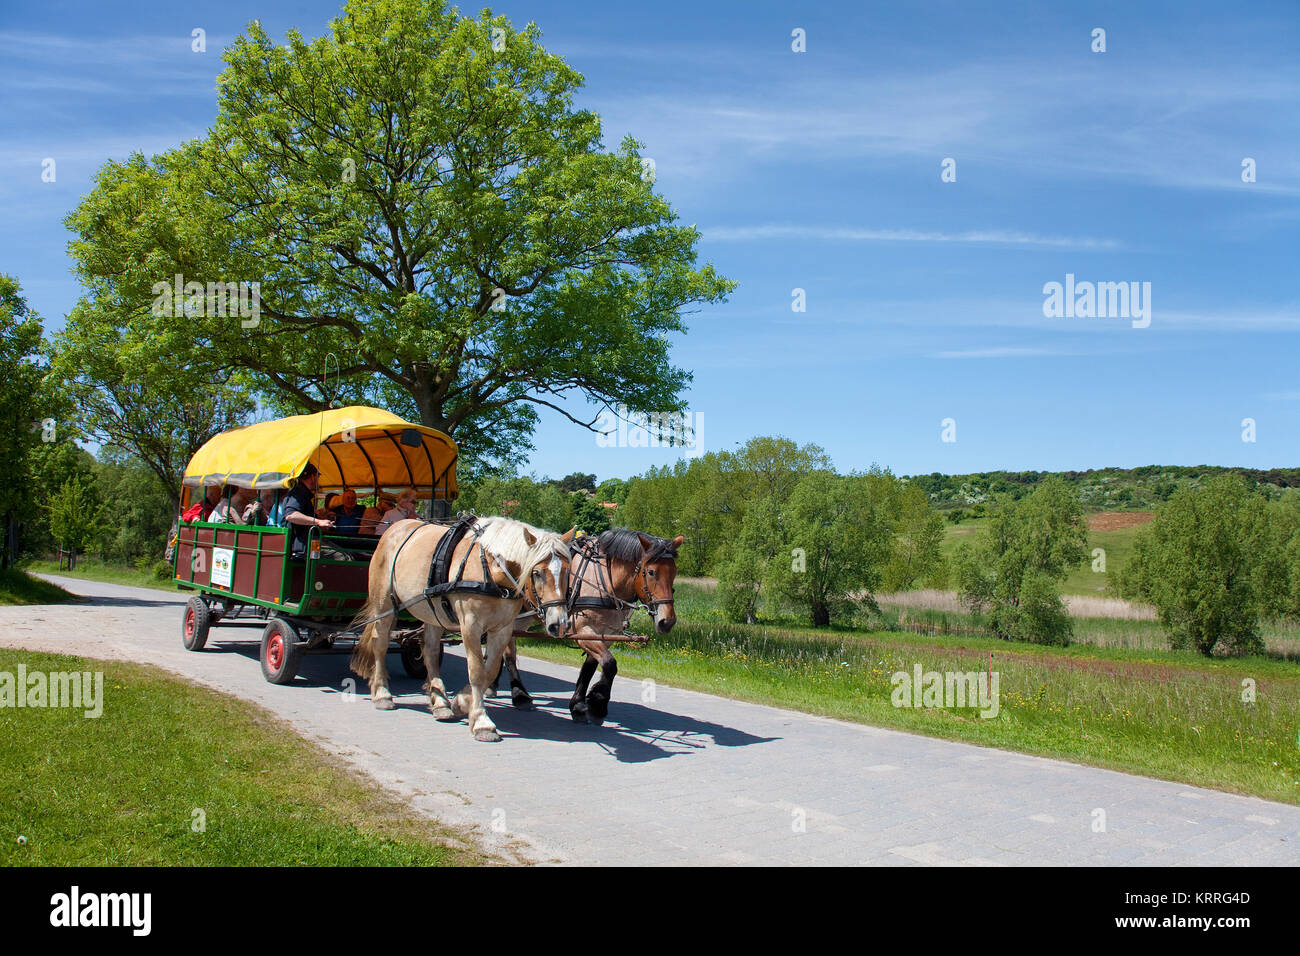 Horse-drawn carriage on a the way from village Kloster to village Grieben, island Hiddensee, Mecklenburg-Western - Stock Image